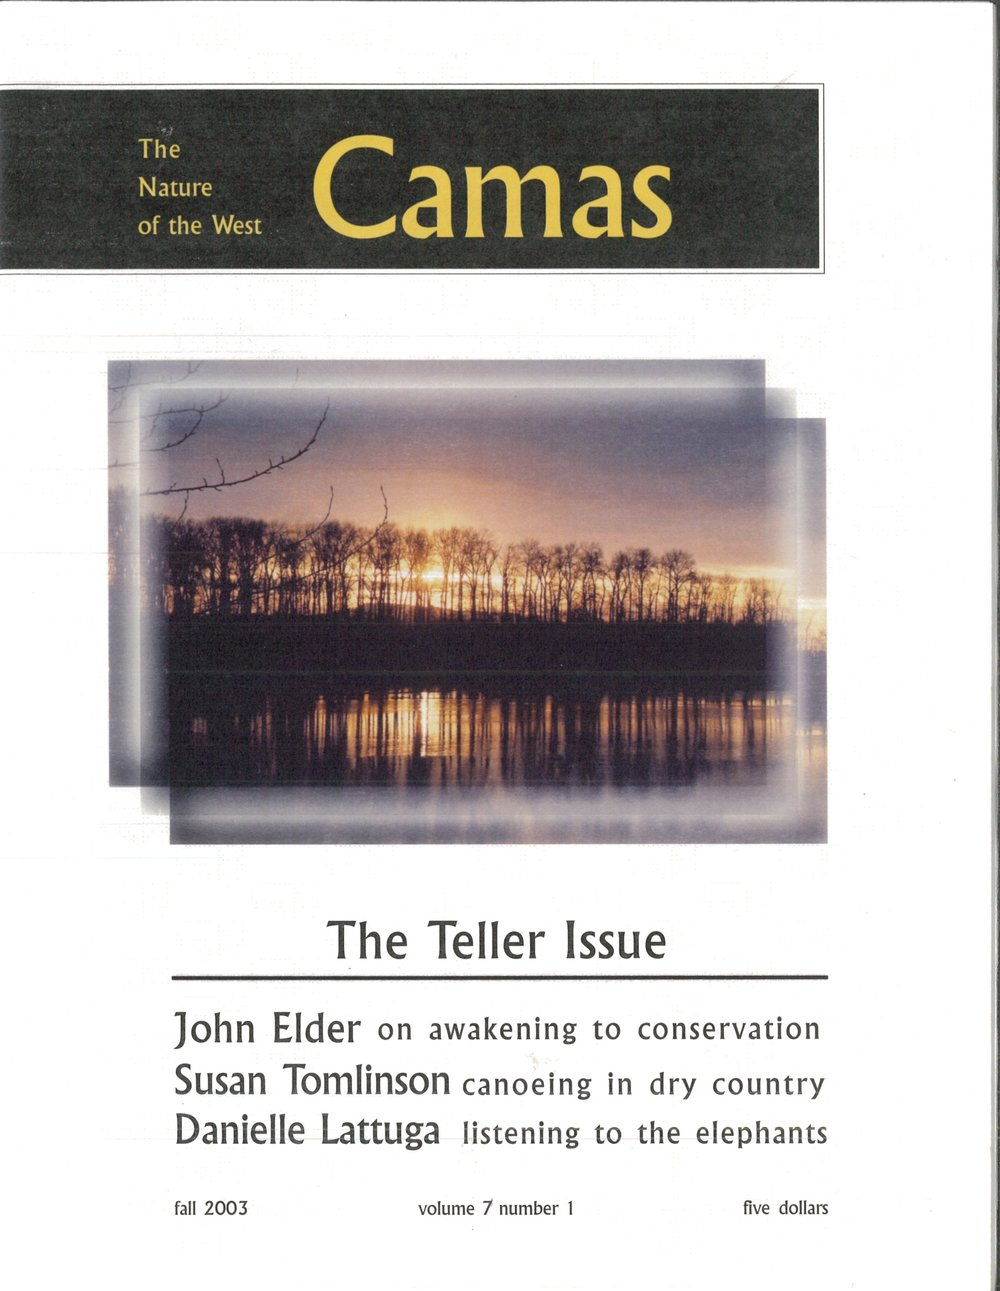 Fall 2003: The Teller Issue - Featuring